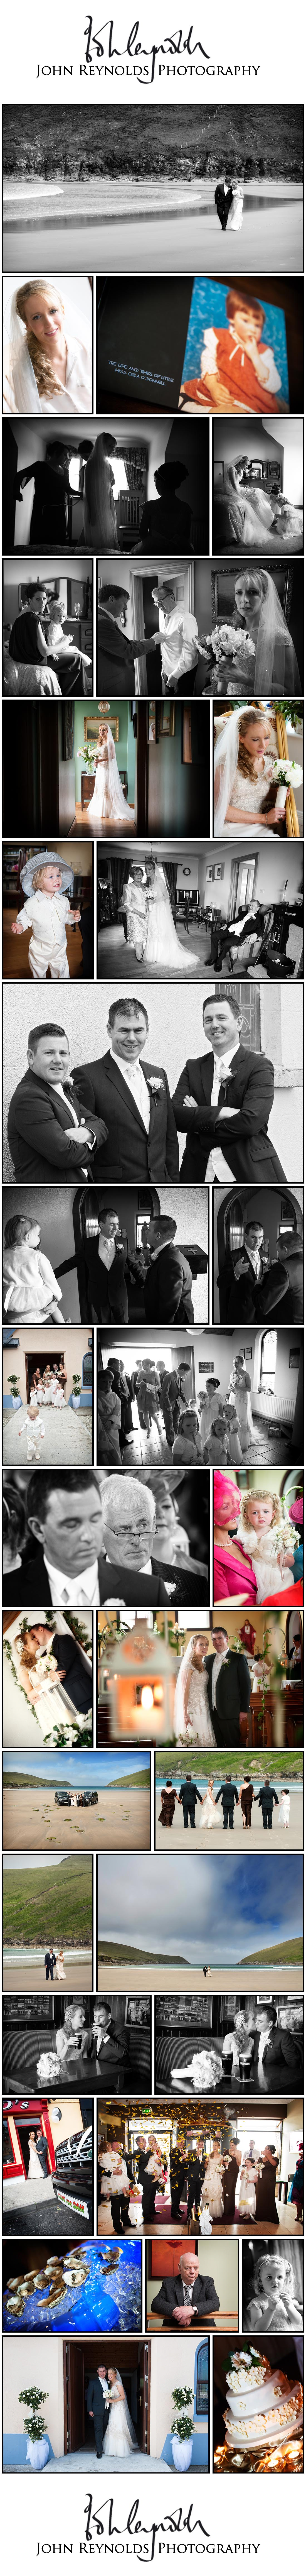 Orla & Daniel Blog Collage